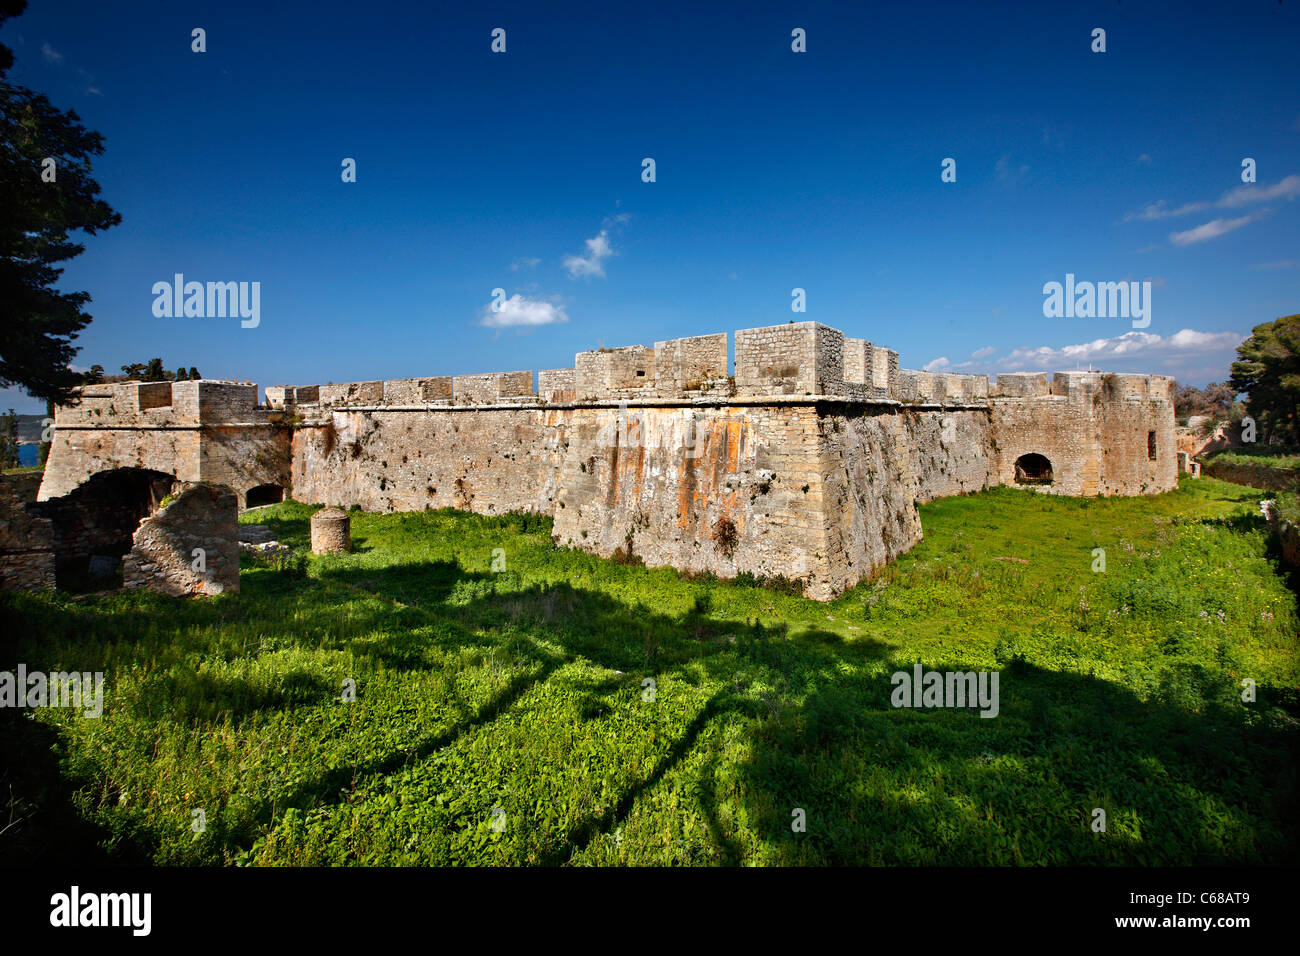 The Niokastro (means 'New Castle') of Pylos town, Messinia prefecture, Peloponnese, Greece. - Stock Image